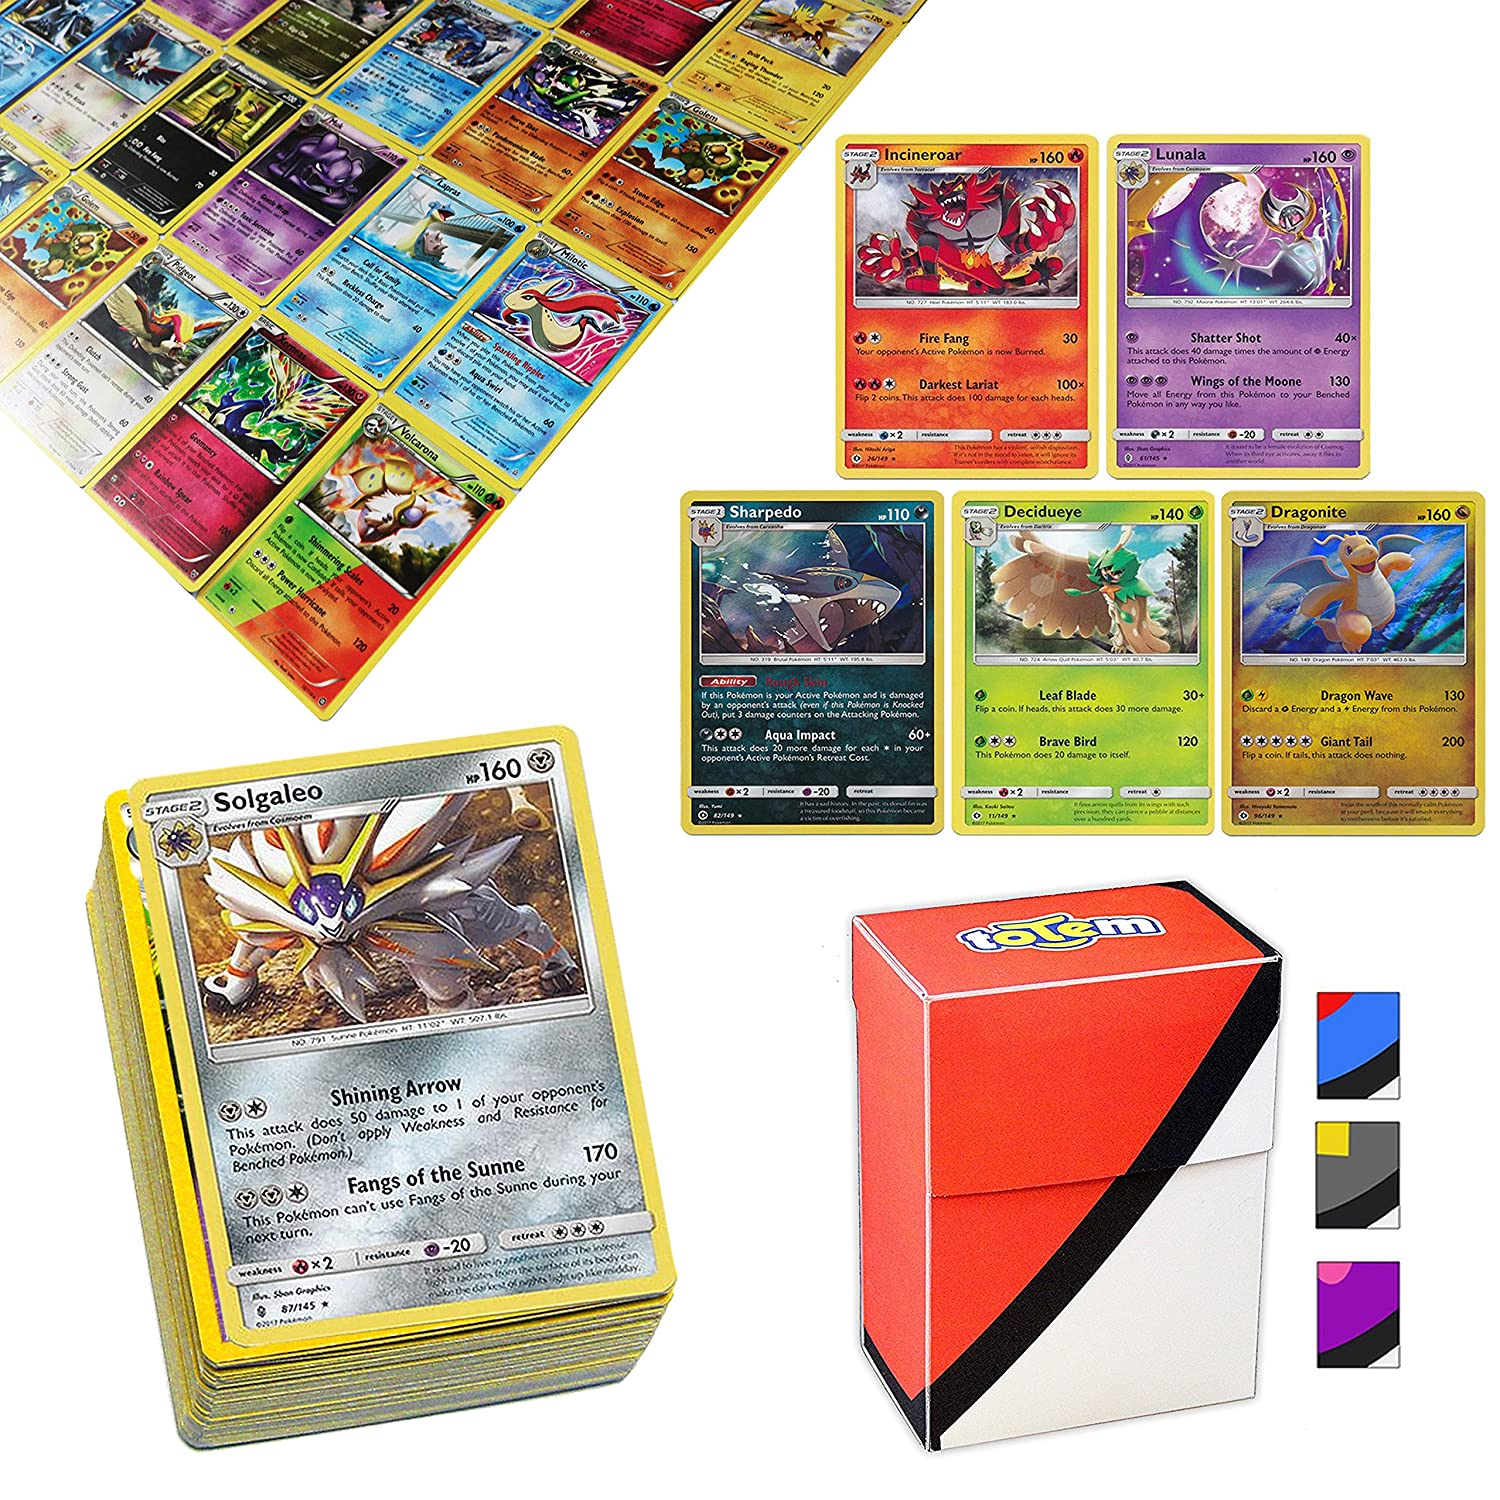 100 Pokemon Cards with 5 Holo Rare Cards and Totem Deck Box Assortmart